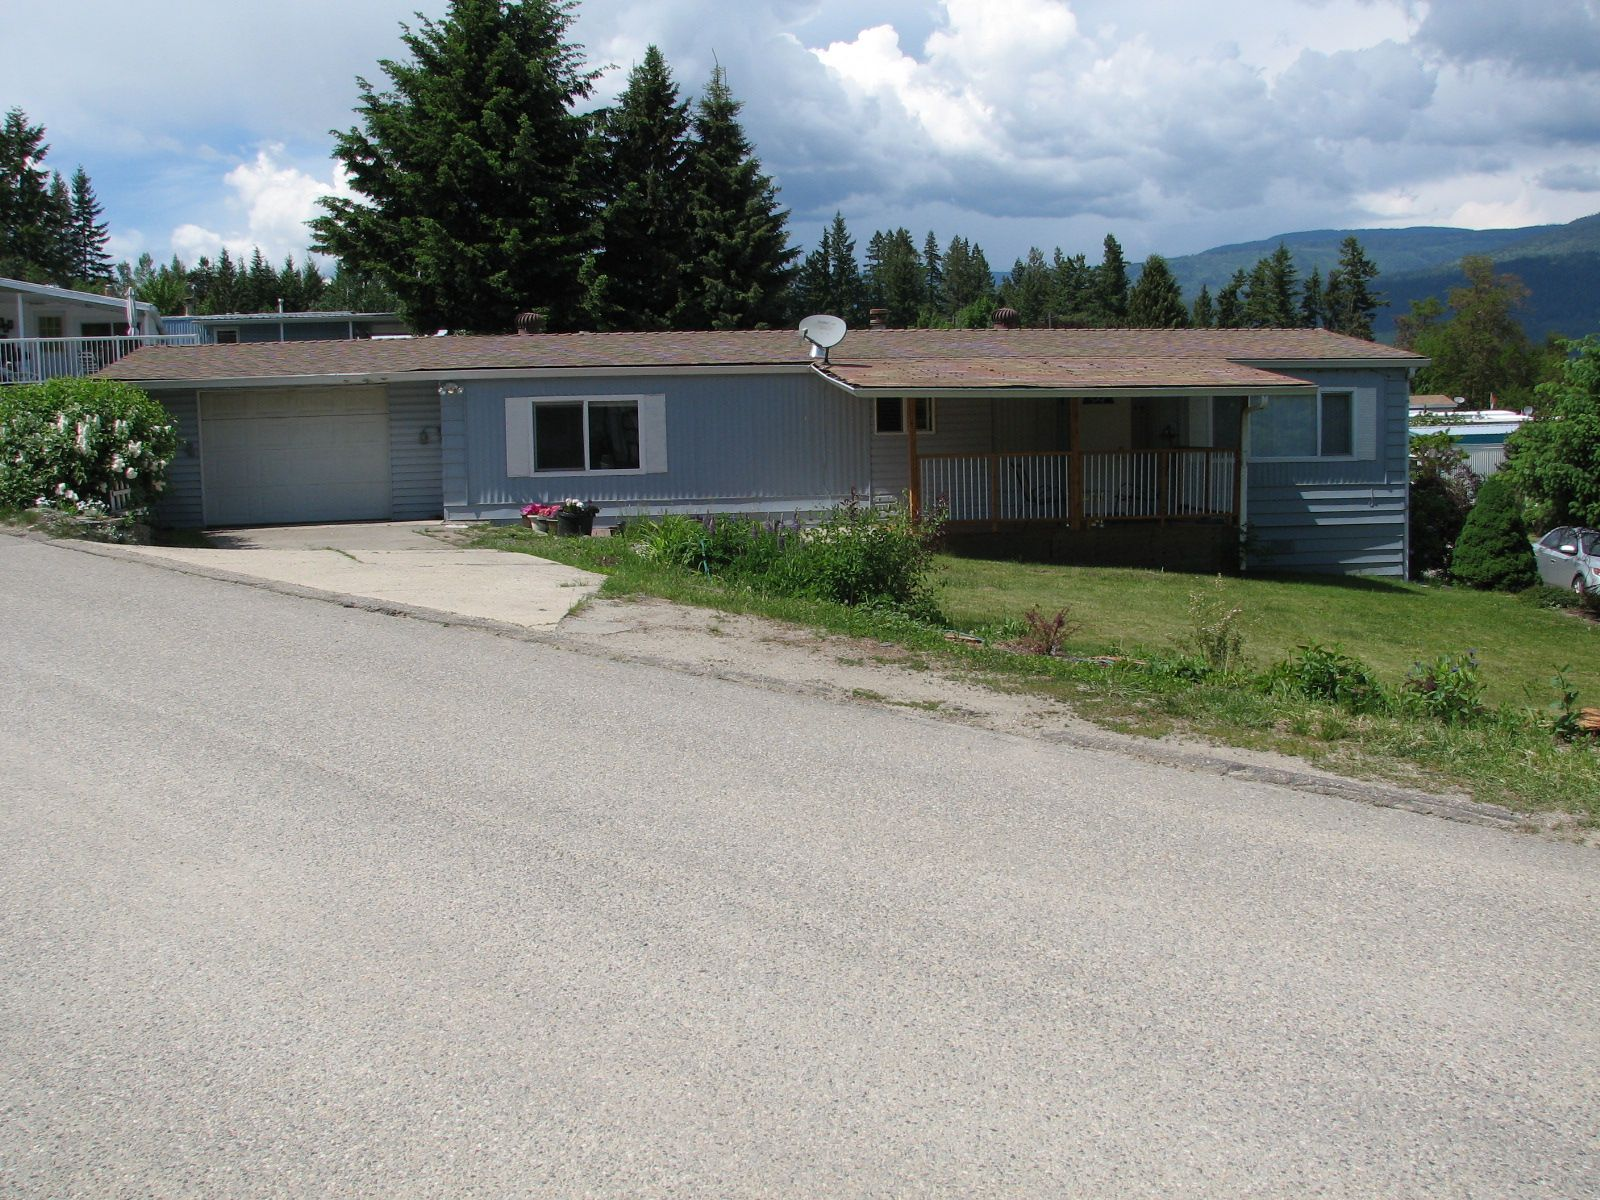 Main Photo: 33 - 2932 Buckley Rd: Sorrento Manufactured Home for sale (shuswap)  : MLS®# 10184516